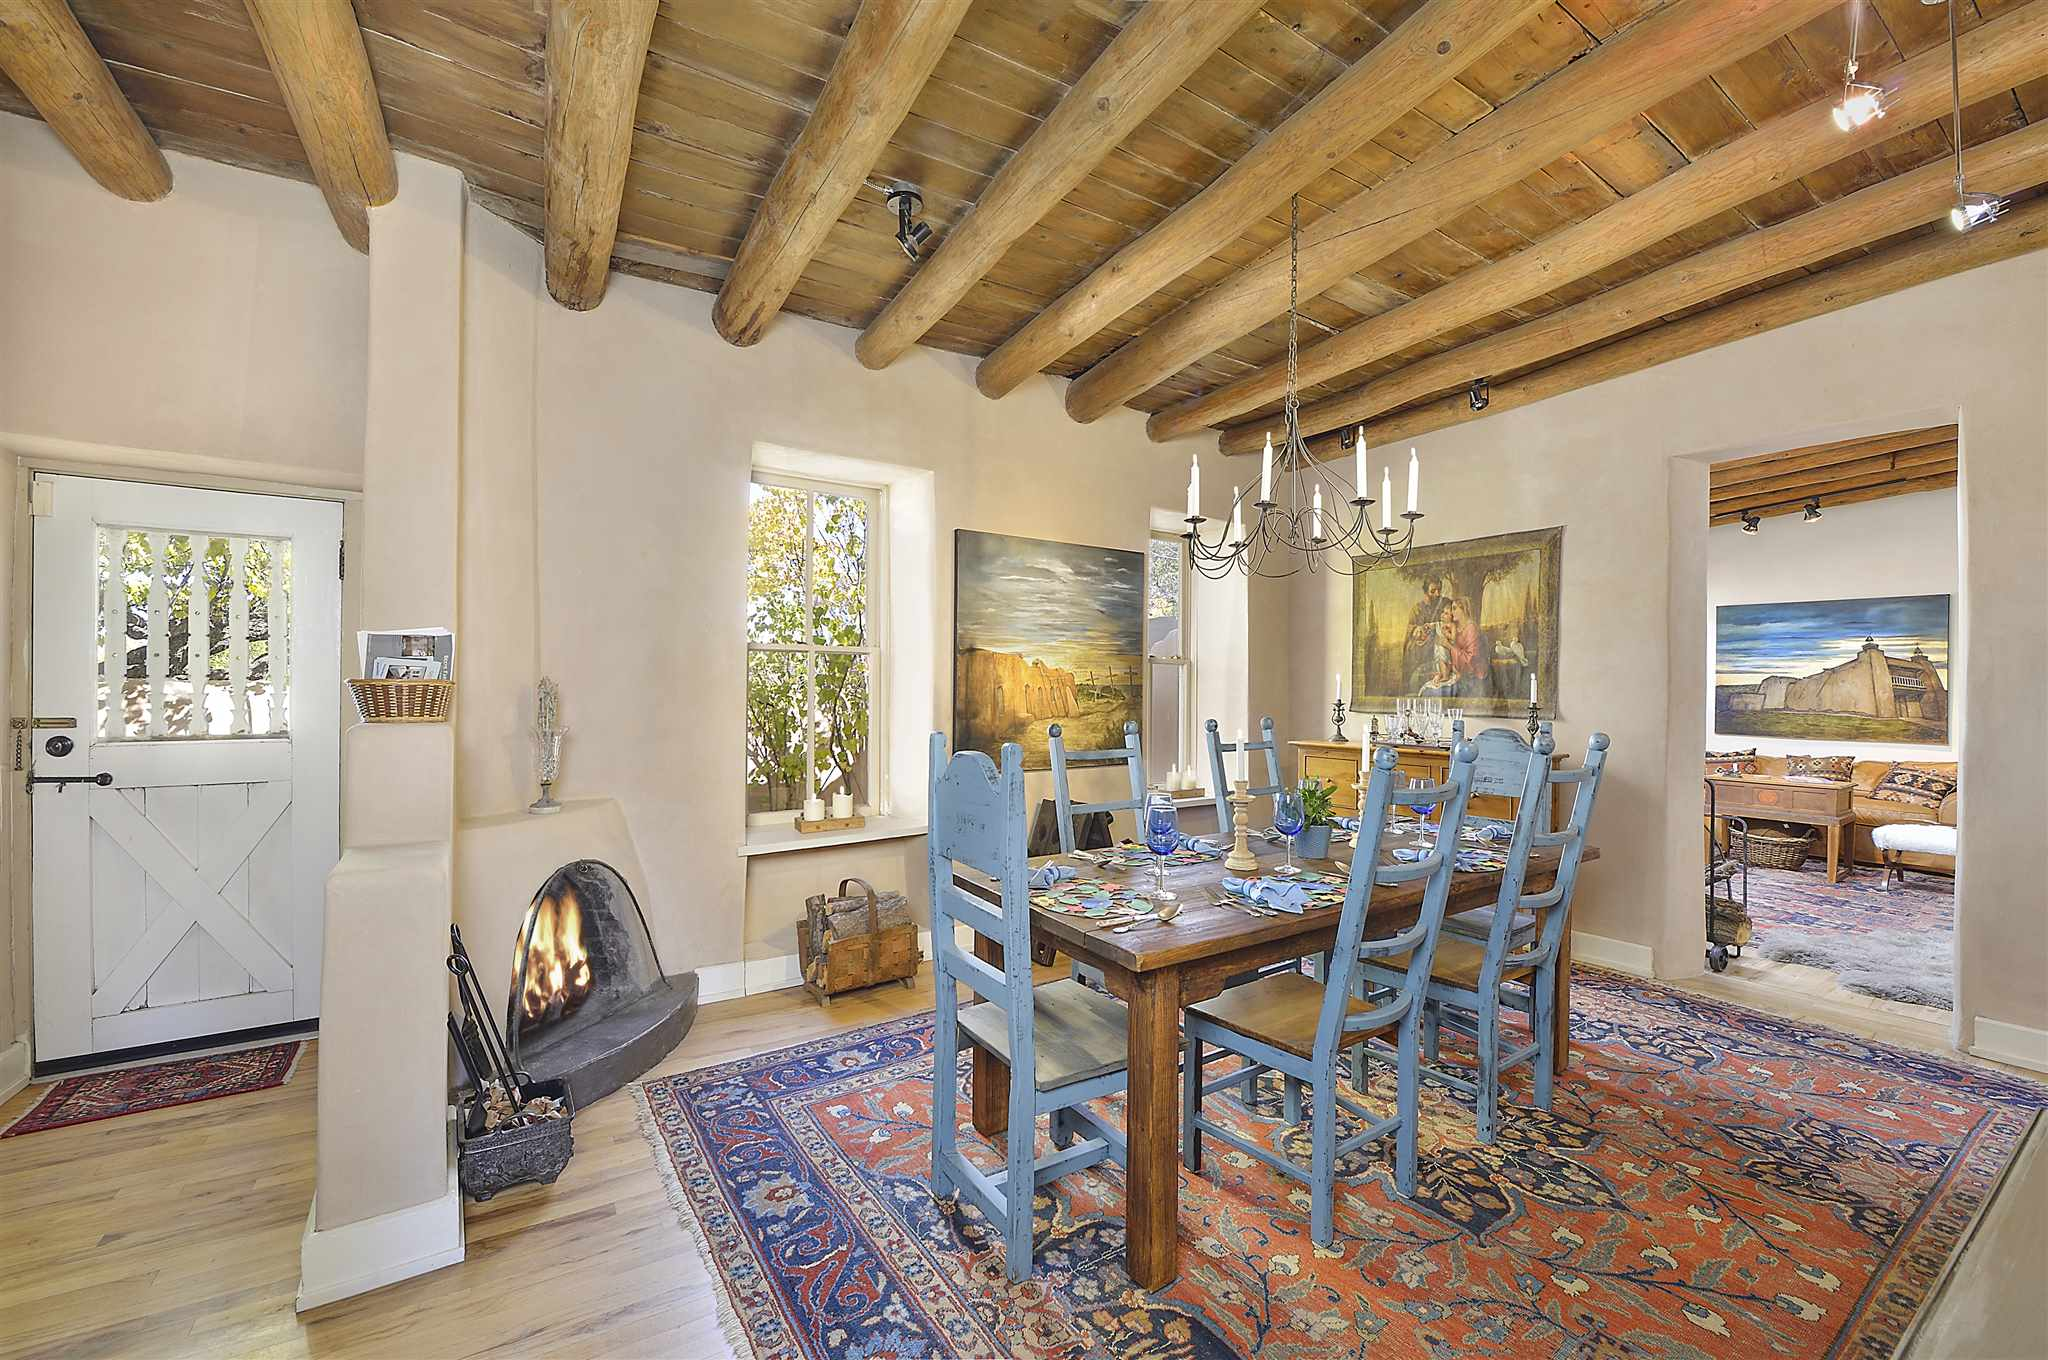 Recently renovated 3 bedroom 2 bathroom condo tucked away near downtown Santa Fe on the Historic Eastside. Private, brick-lined courtyard with rustic hand-carved wood gate and covered portal. The character and history of the Southwest flow into the living room with viga ceilings, wood floors, and a kiva fireplace, one of five kivas in the home. The renovated kitchen is appointed with custom wood cabinetry, butcherblock countertops, recently added stainless steel appliances, and an intimate breakfast nook. Split bedroom plan with two adjoining bedrooms on one side of the home with a third bedroom or multi-flex space on the other. Extra closet space recently added and laundry room reconfigured. The bathrooms feature subway tile throughout, porcelain vanity, and tub and shower combo. Wood floors throughout. Private brick-lined front courtyard, covered storage, 1 car garage and 3 carport parking spaces. Perfect pied-a terre or investment opportunity. Close to the state capitol, Canyon Road and the Plaza.